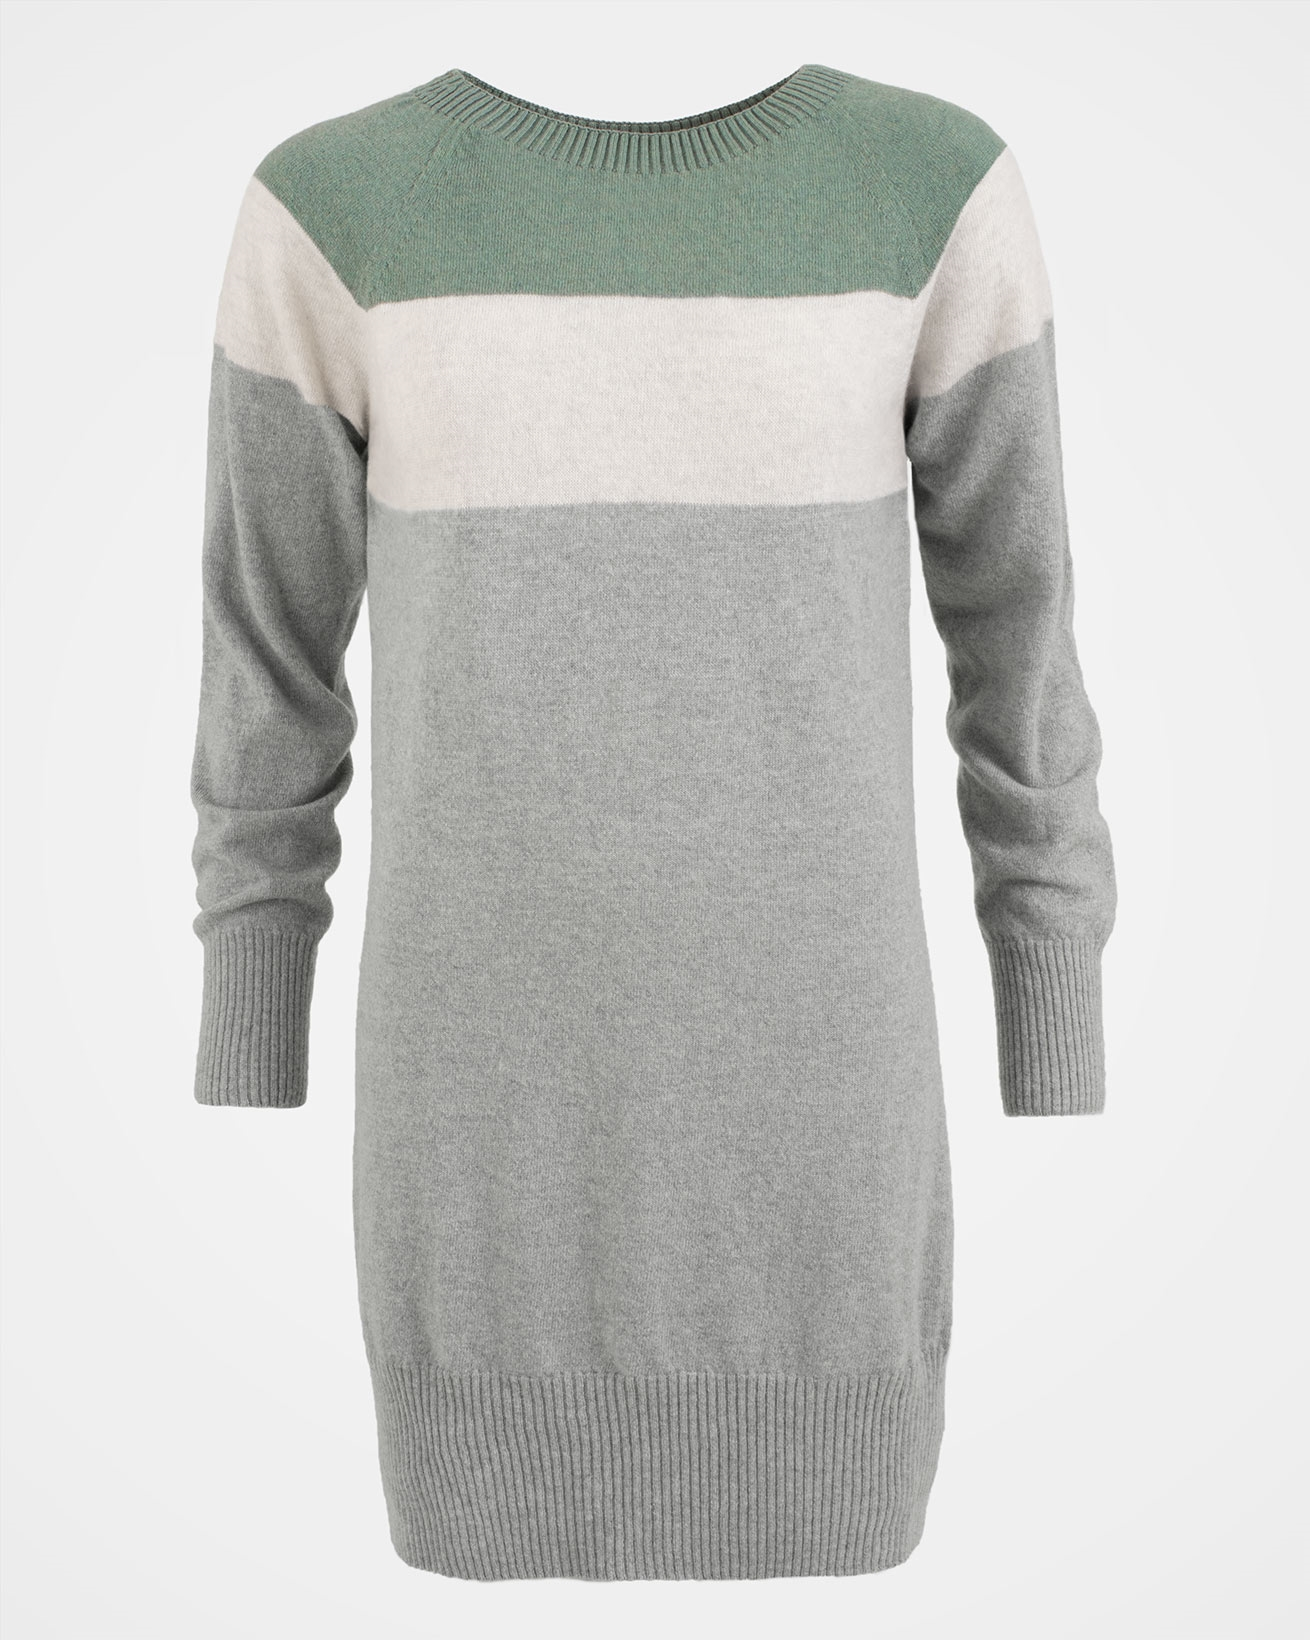 6170_supersoft-slouch-dress_sage-colourblock_front_newstripe.jpg